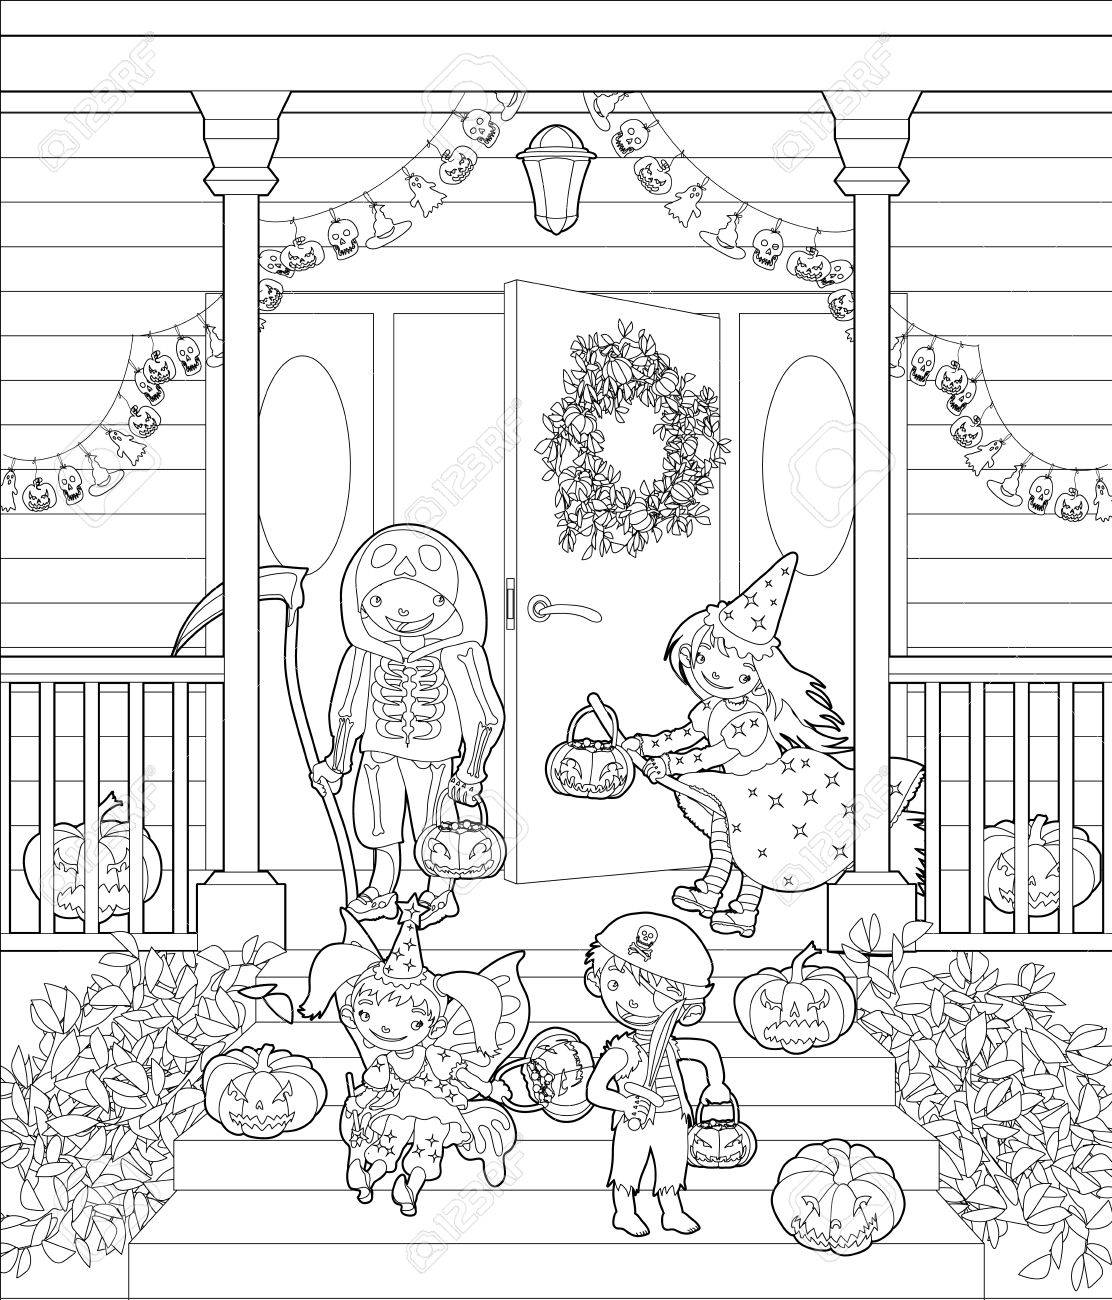 Coloring Pages Costumed Kids Dressed Up For Trick Or Treat